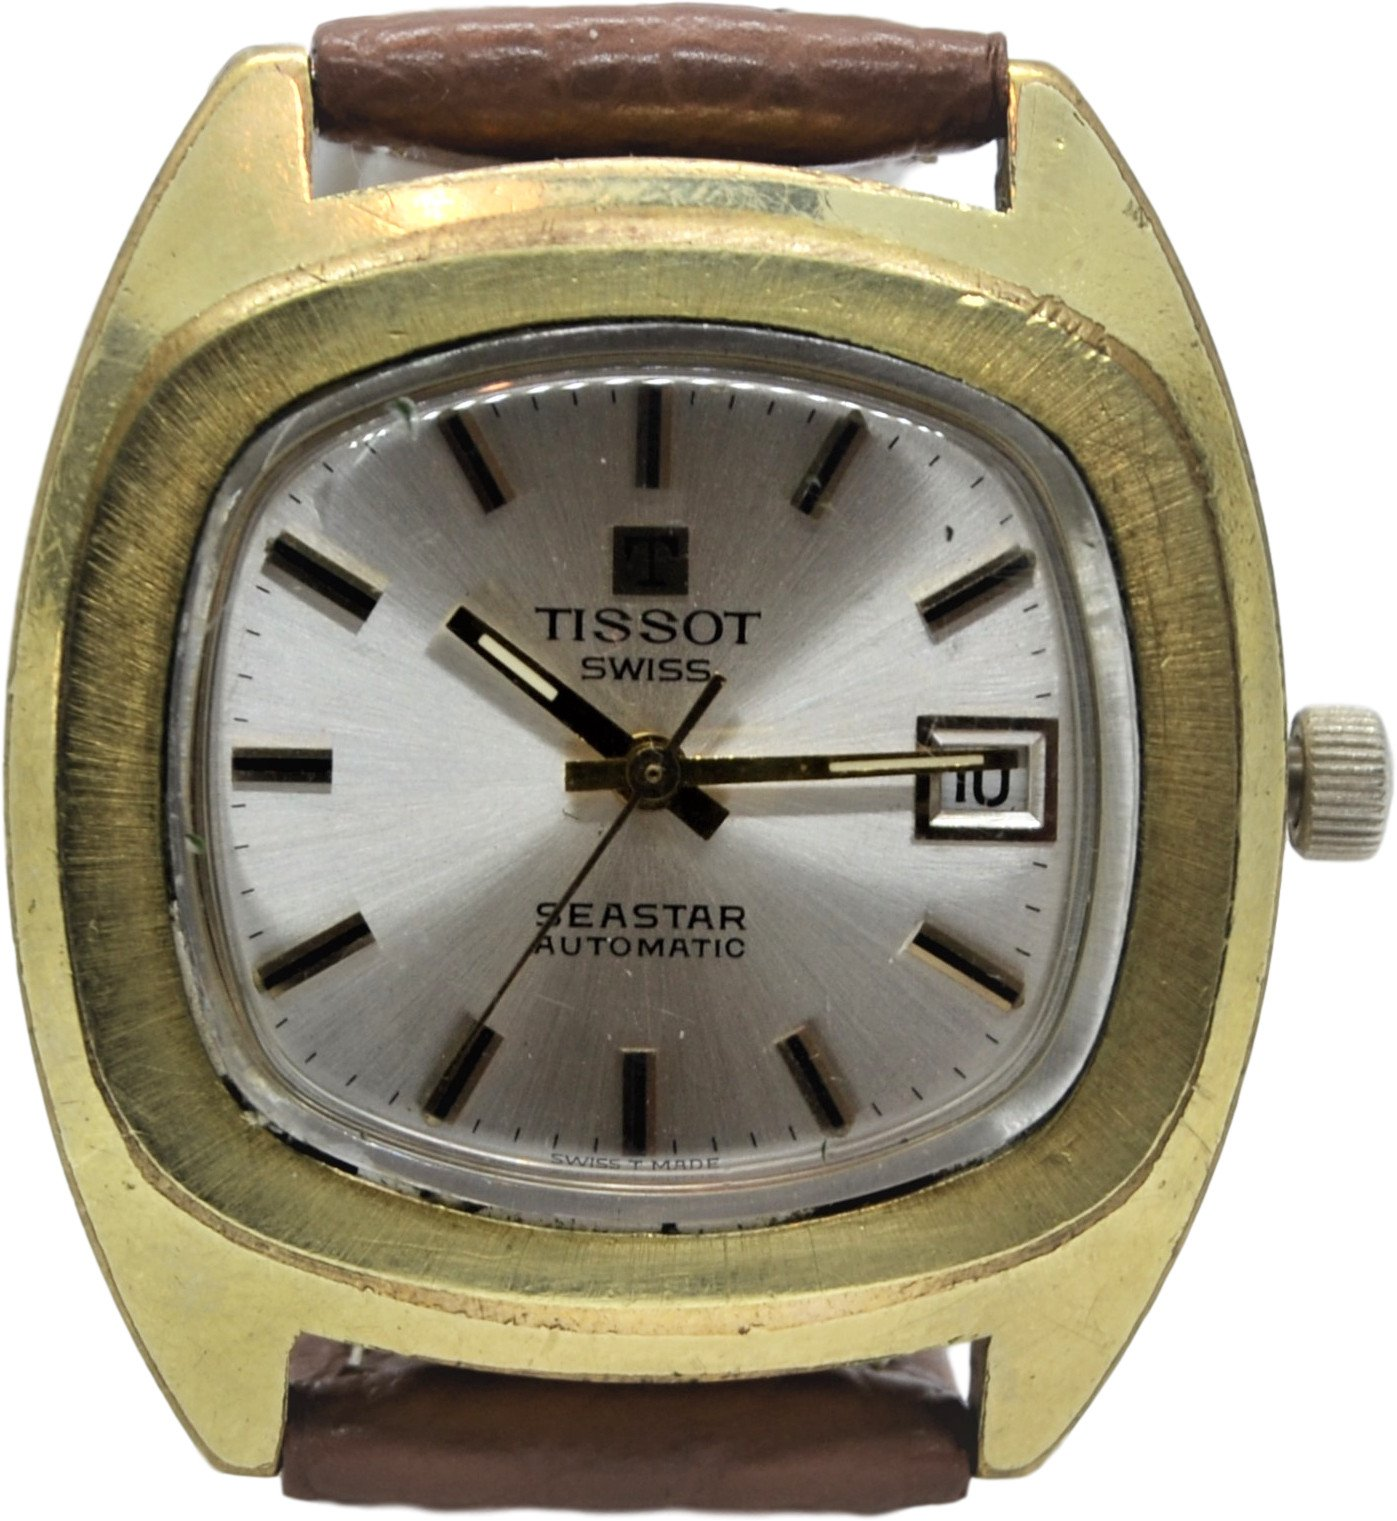 Seastar Watch, Tissot, Switzerland, 1970s